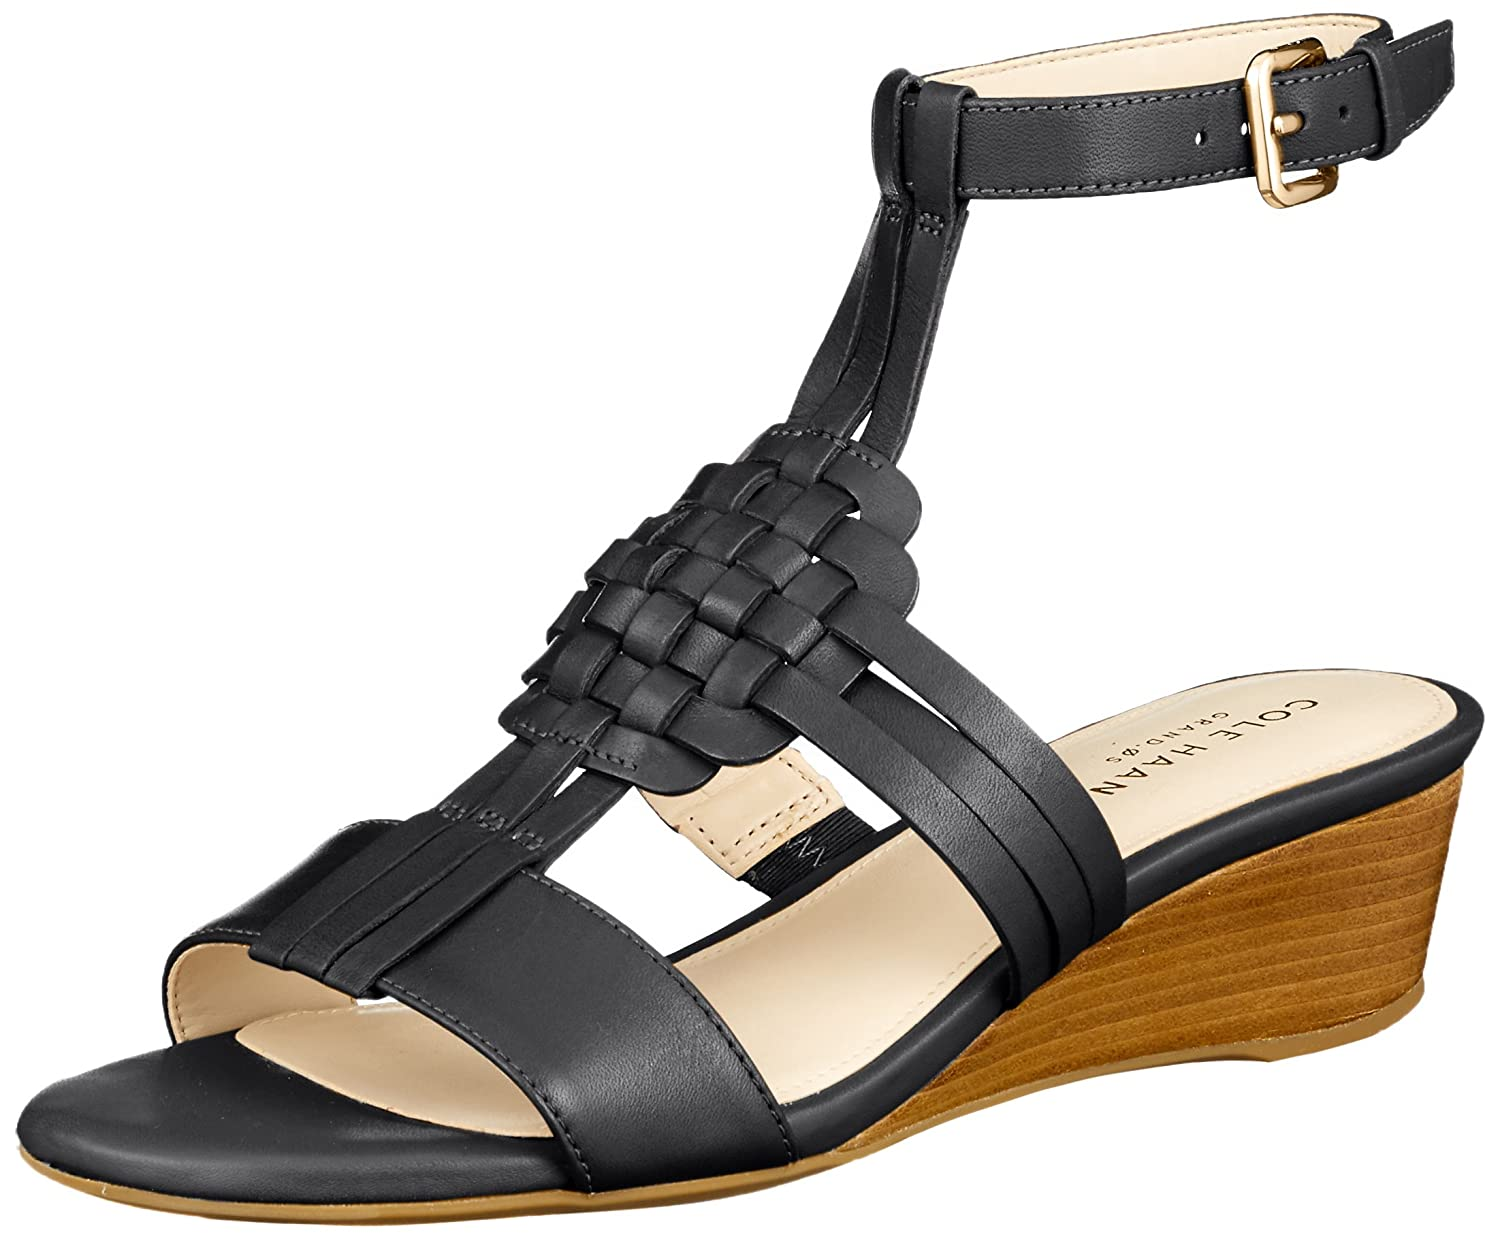 Cole Haan Womens Findra Woven Slide Wedge Sandal B07C2TWRQS 6 B(M) US|Black